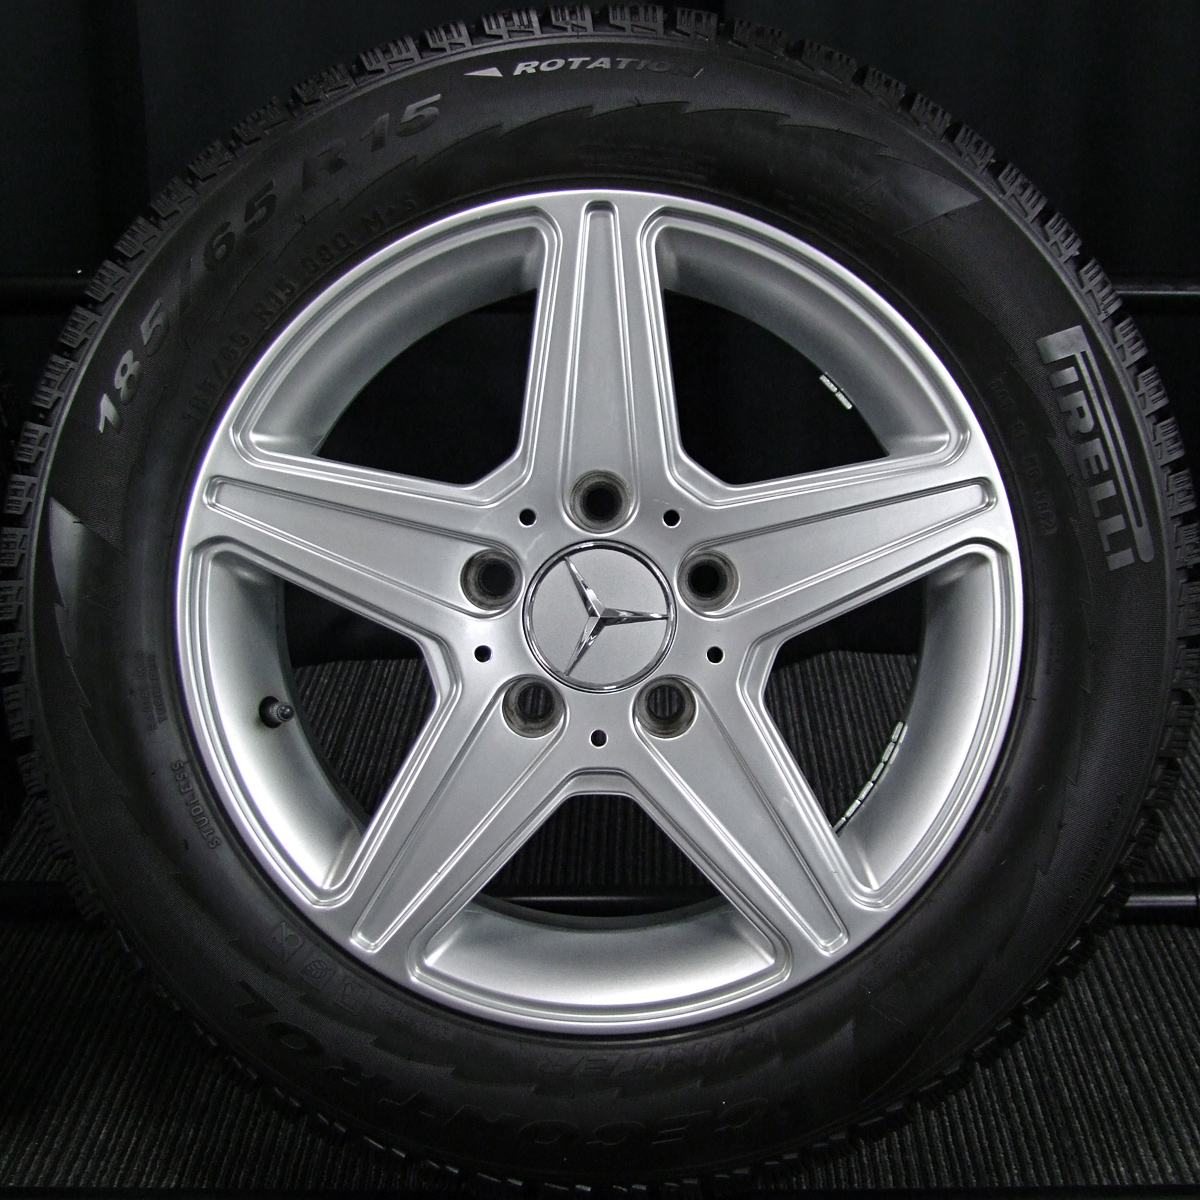 BRIDGESTONE TARGA AGA Burg シルバー PIRELLI WINTER ICECONTROL 185/65R15 4本SET